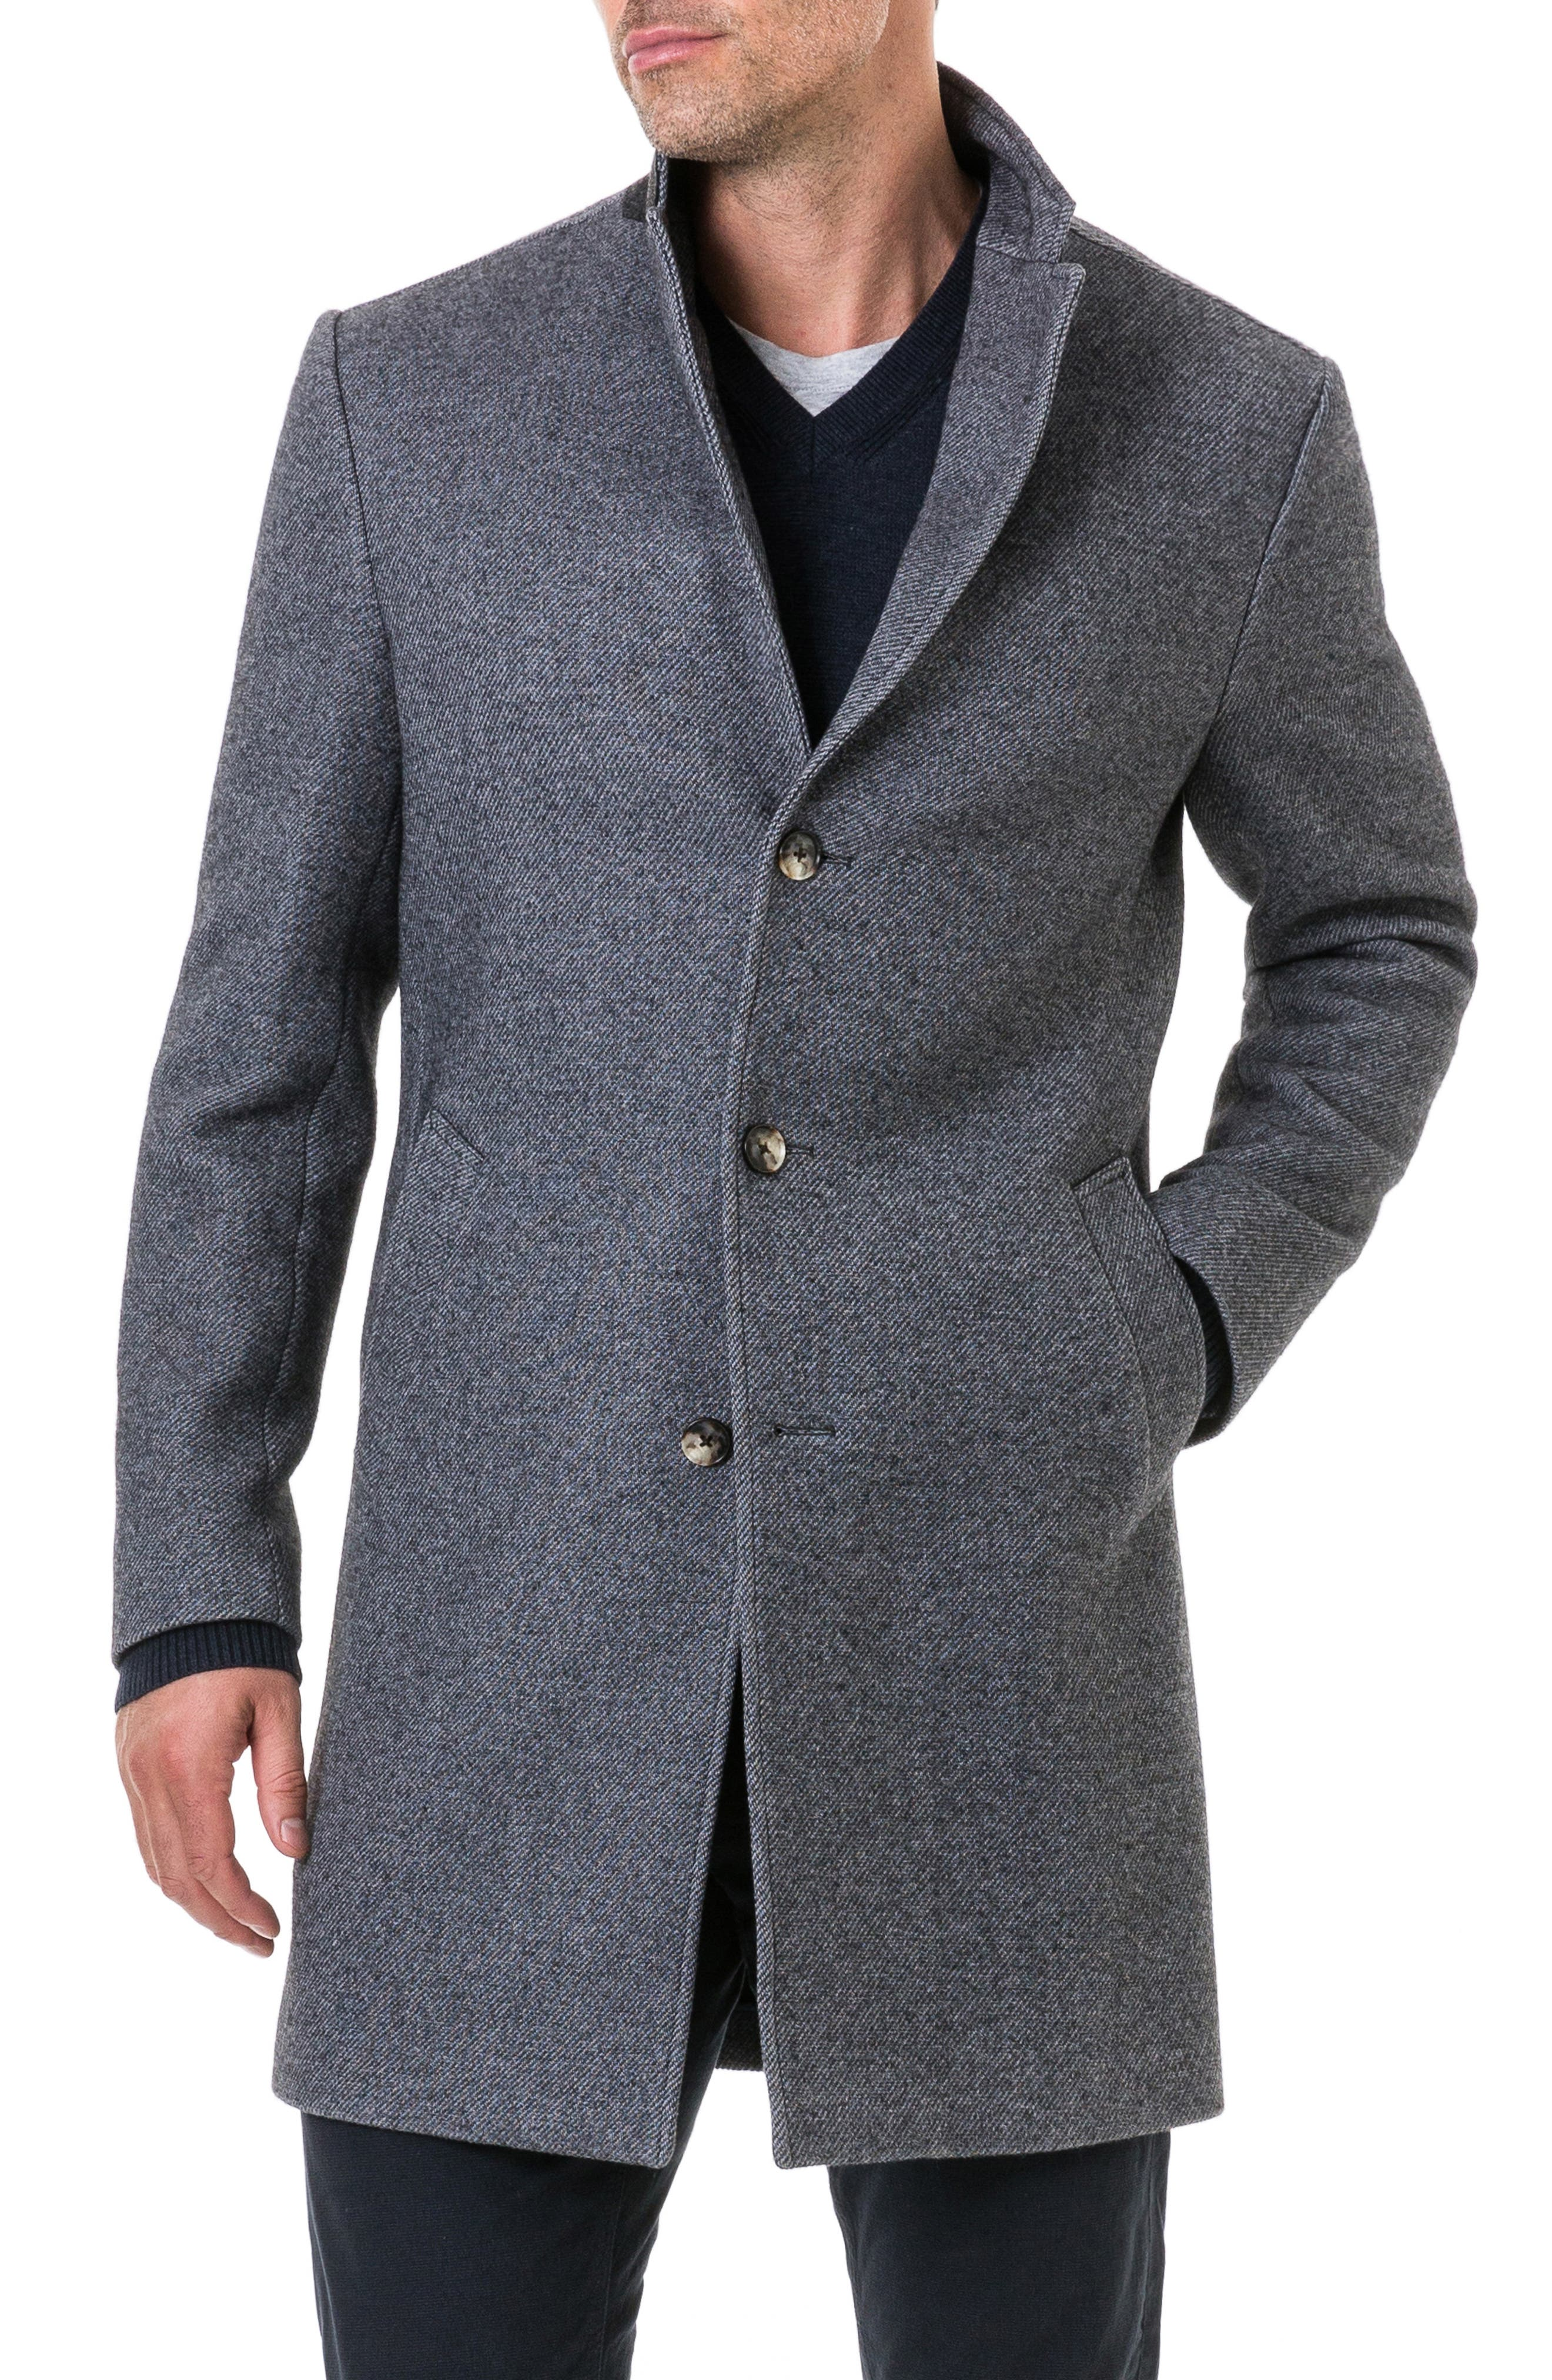 Calton Hill Wool Blend Coat,                             Main thumbnail 1, color,                             020